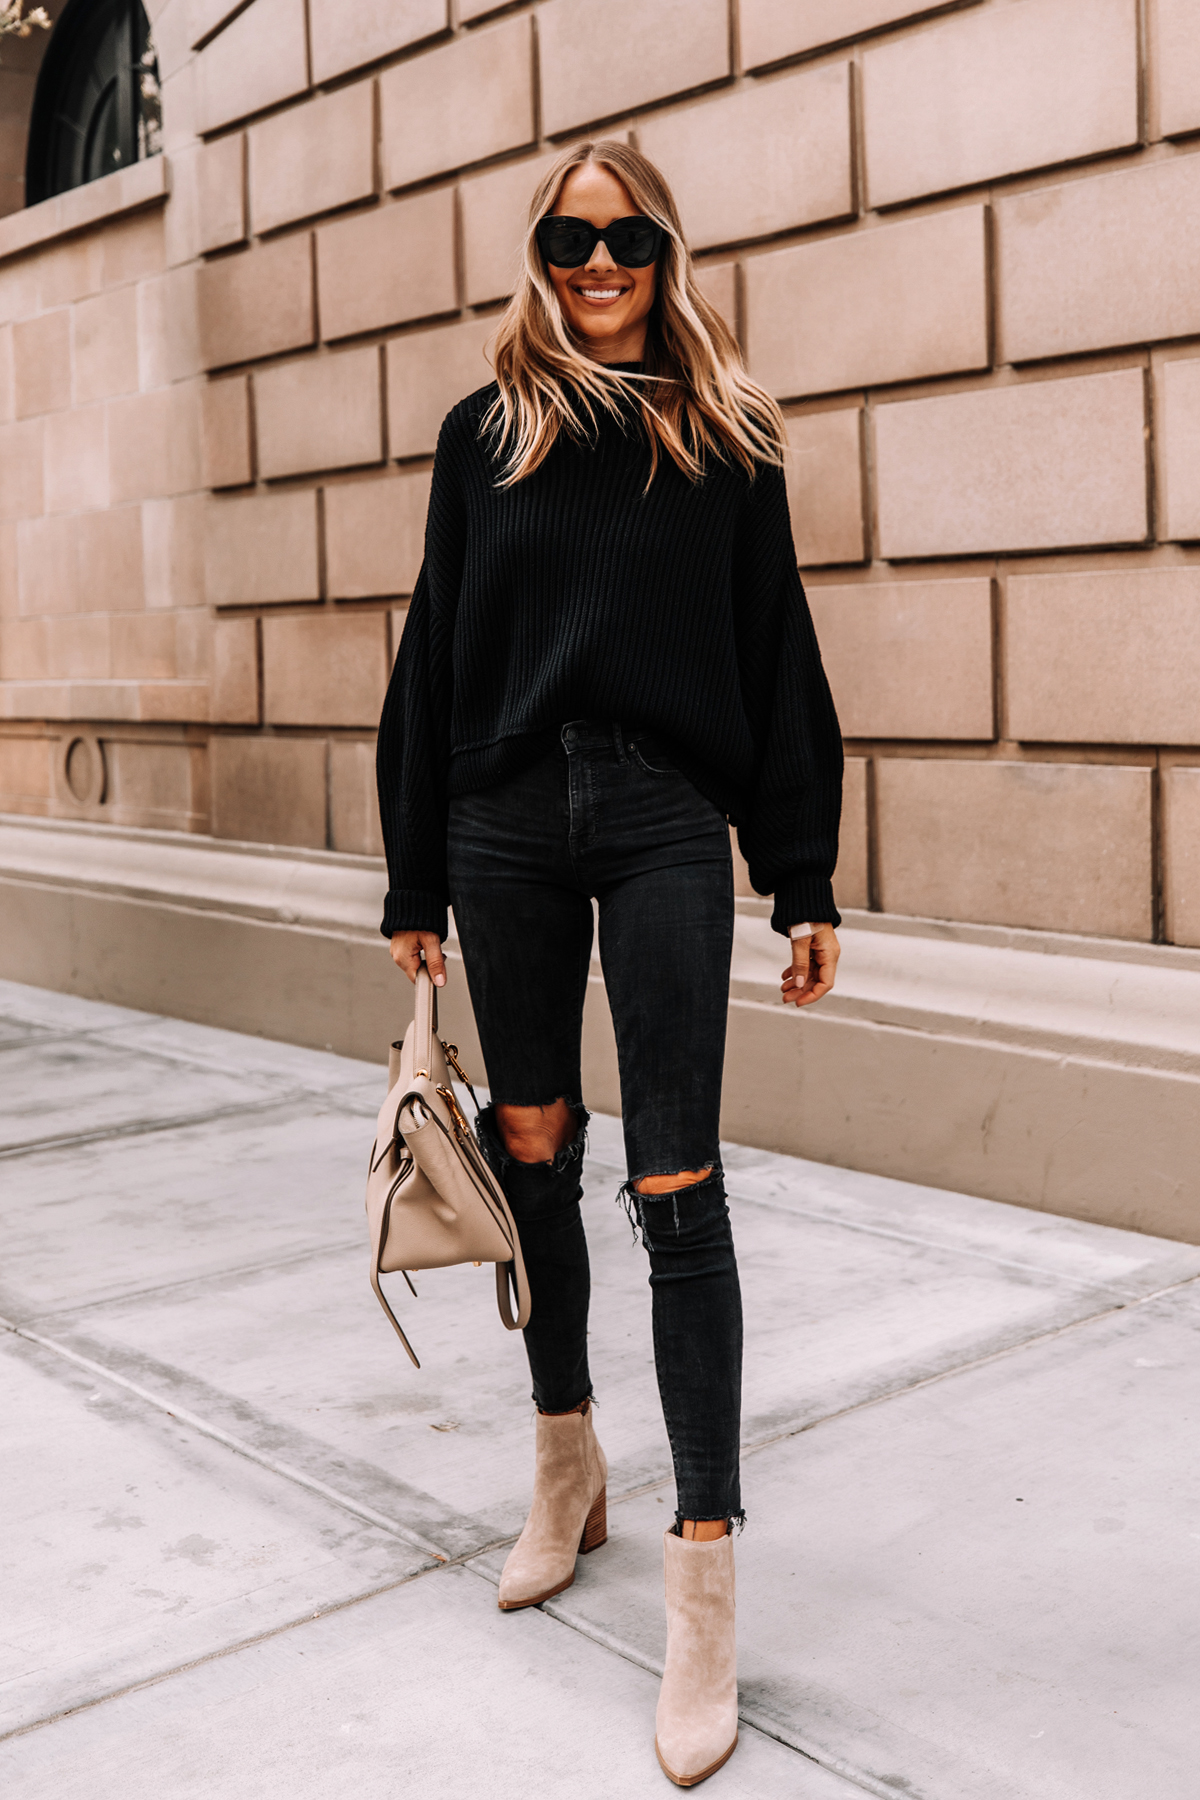 Fashion Jackson Wearing Free People Black Emmy Sweater Madewell Black Ripped Skinny Jeans Tan Suede Booties 1